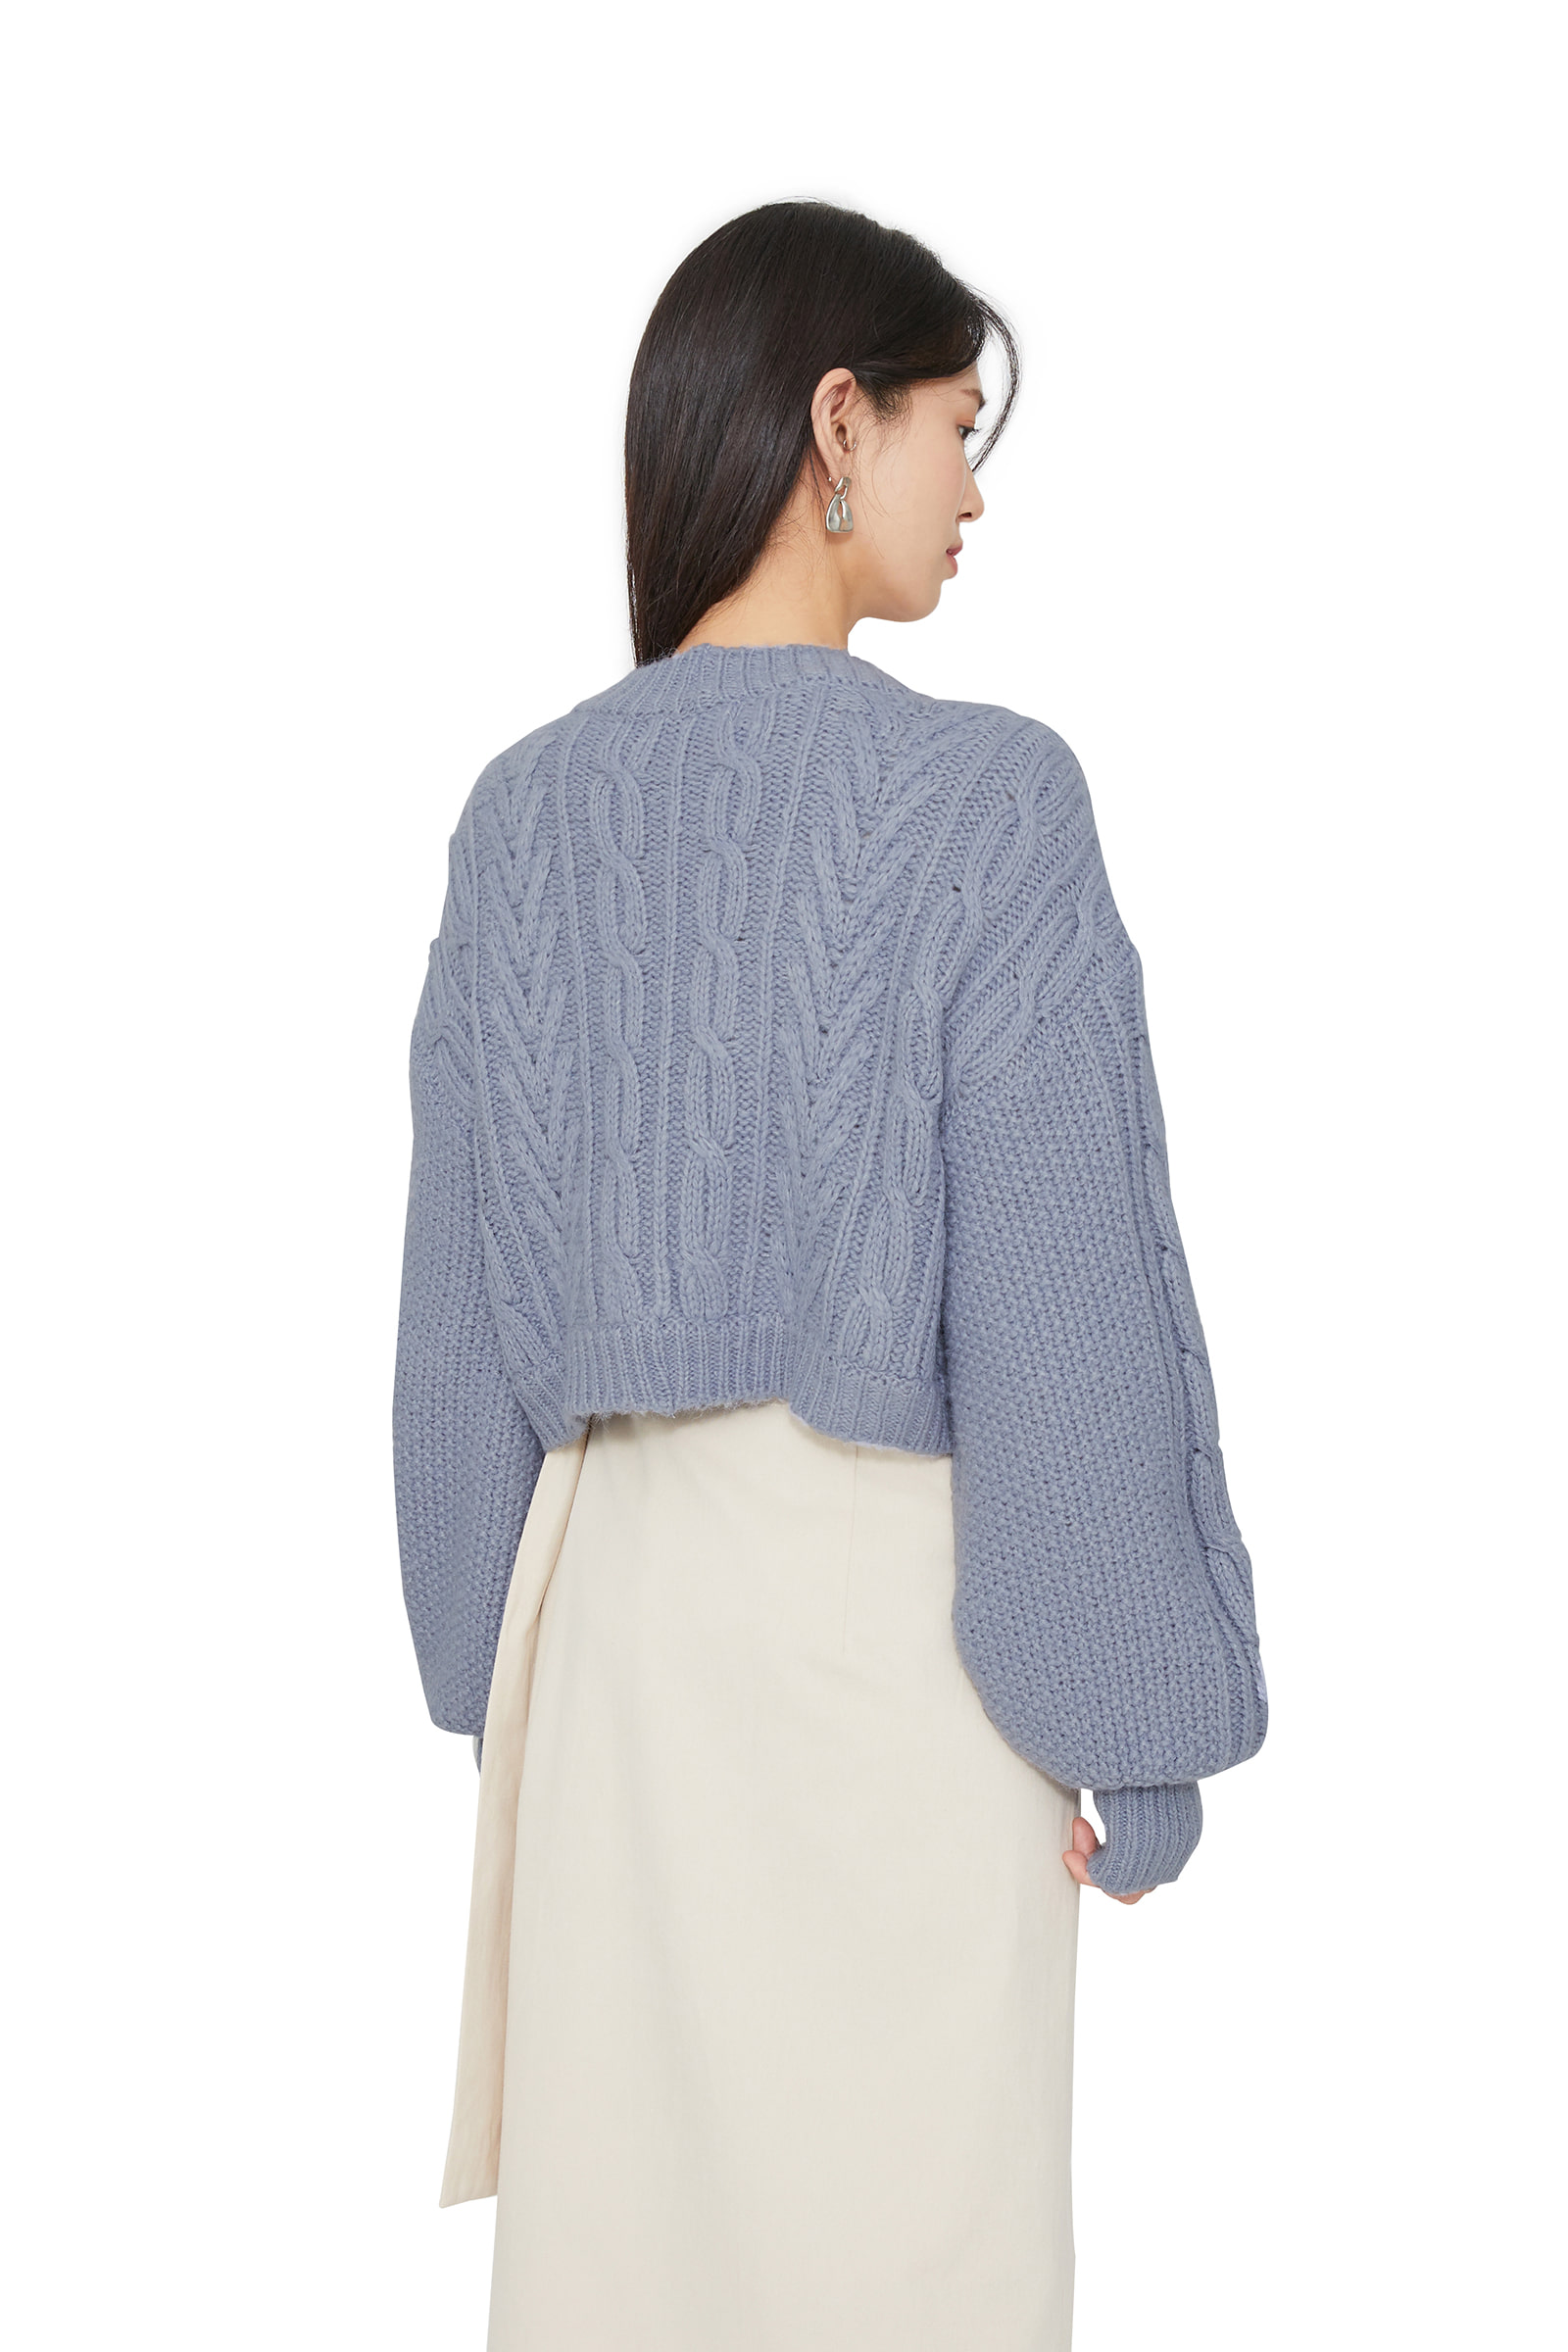 Fall-in-knit bolero